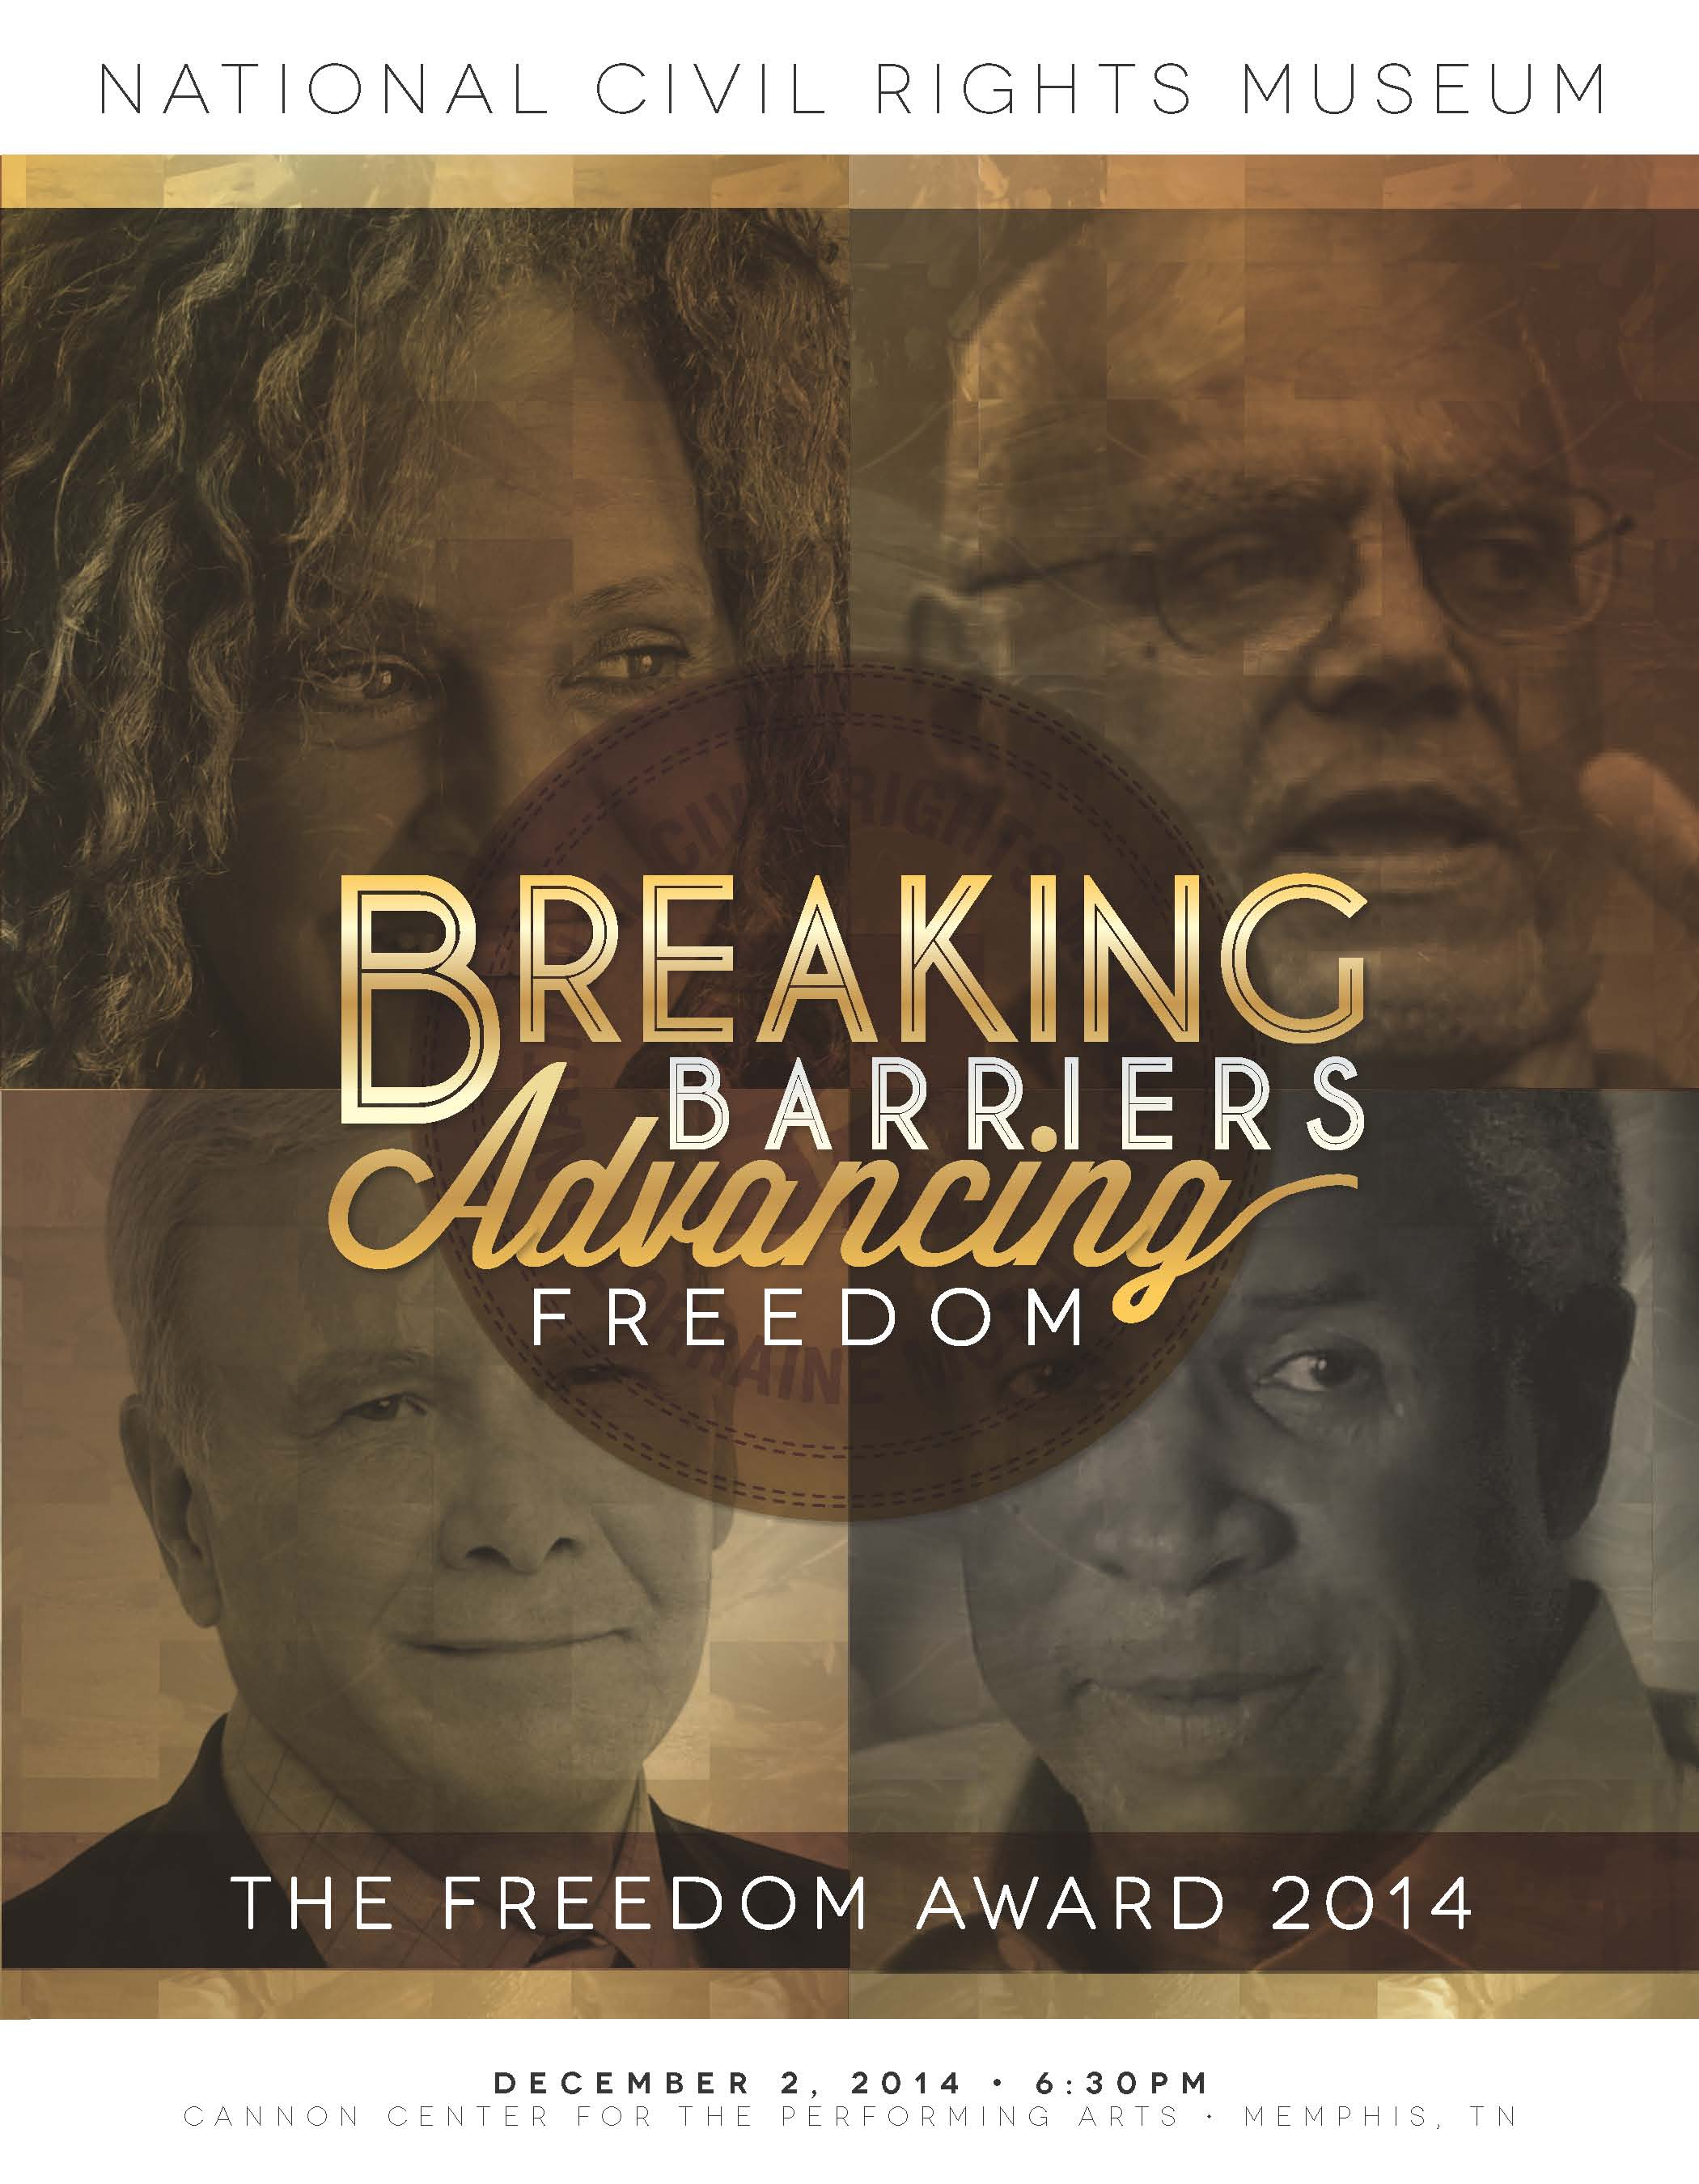 Freedom Award 2014 NCRM Program Cover